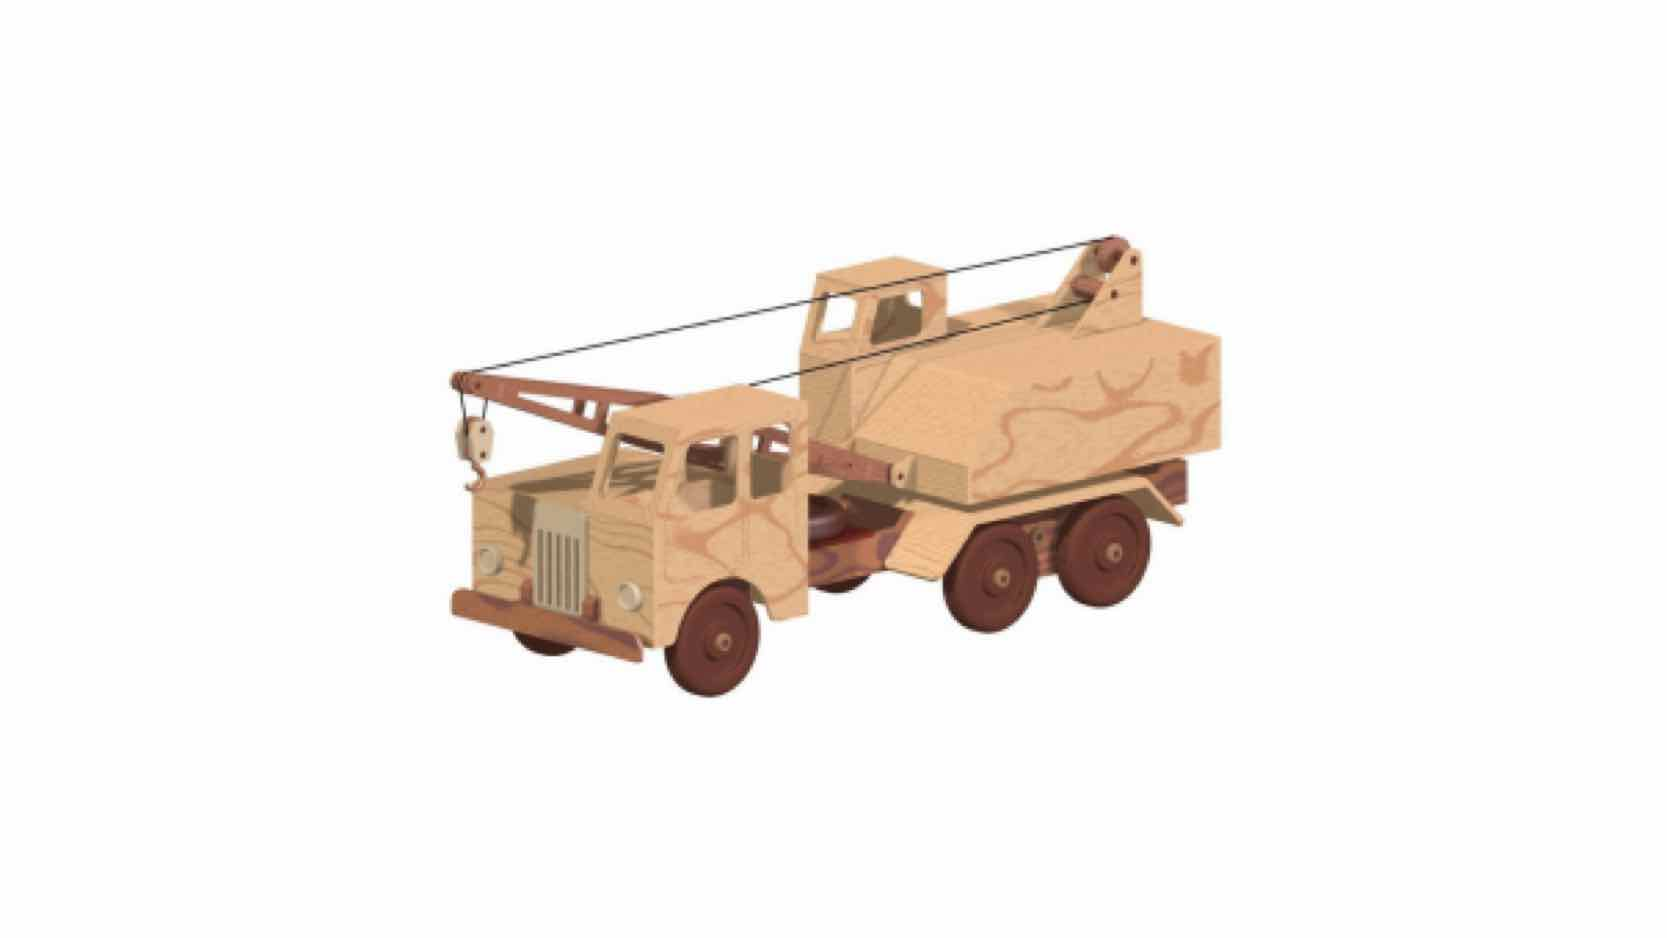 trucks,toys,childrens,moels,cranes,childs,kids,free woodworking plans,projects,do it yourself,woodworkers